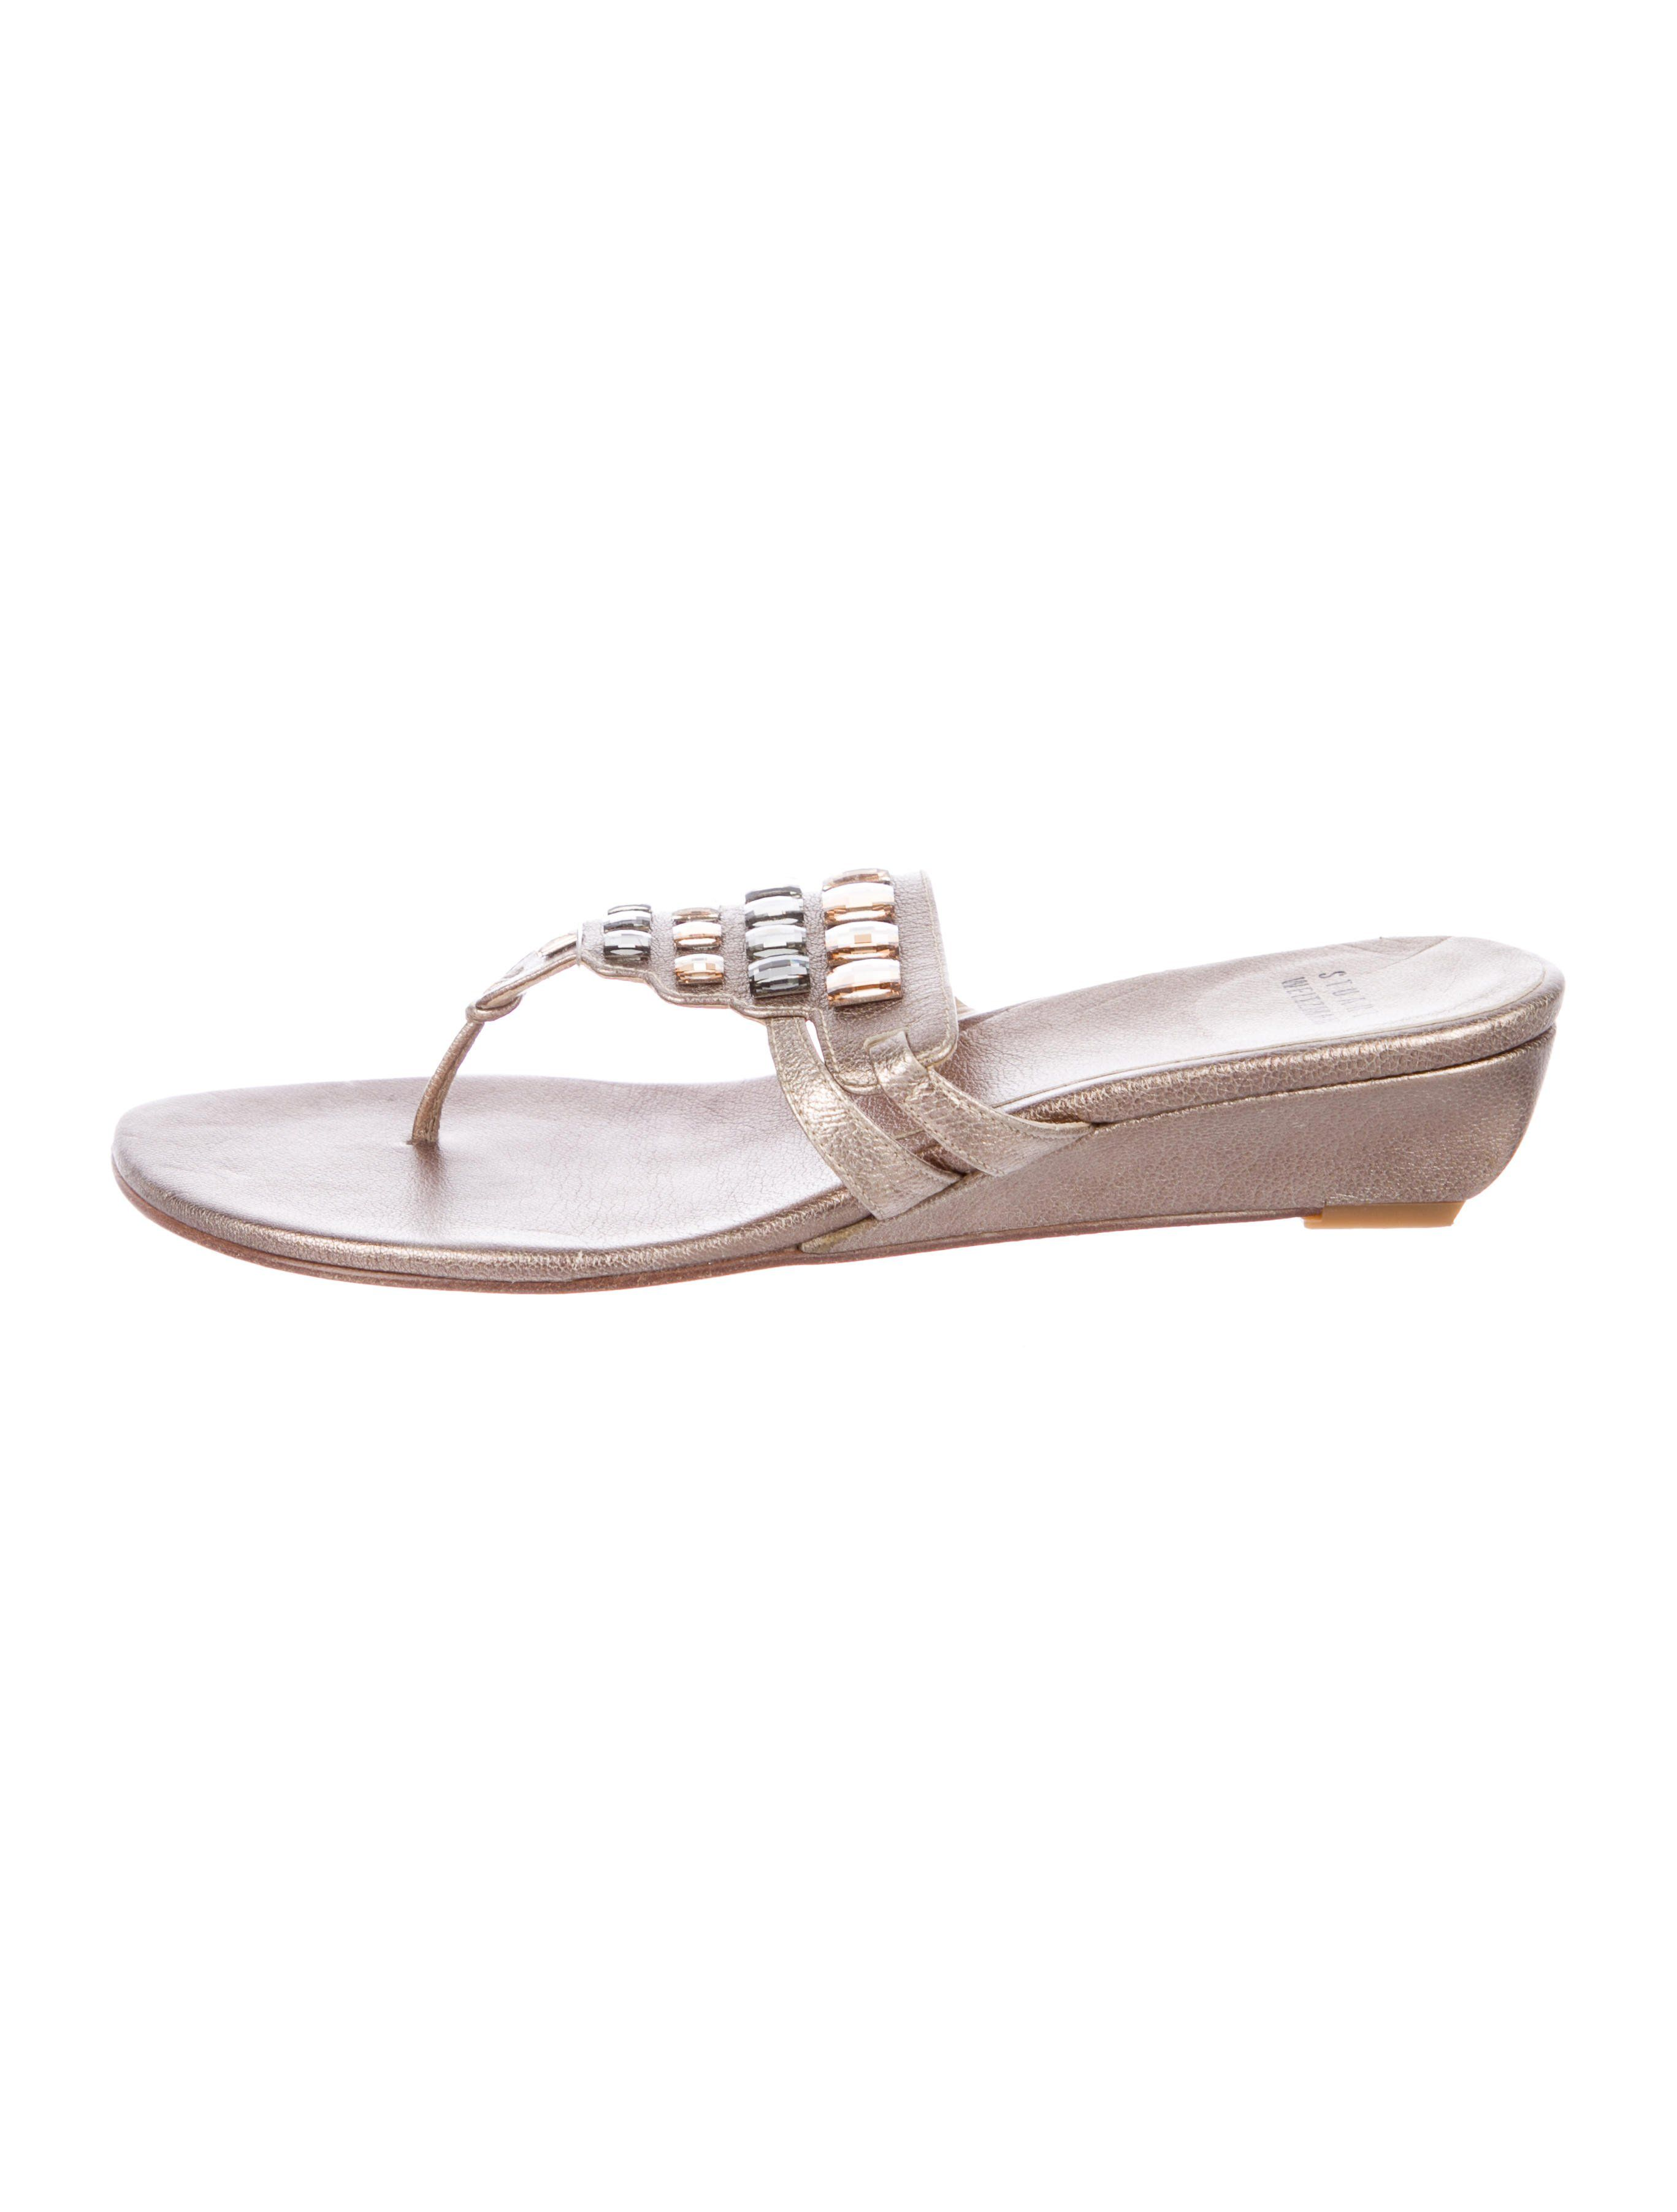 8aadf96ea Metallic leather Stuart Weitzman thong wedge sandals with jewel accents at  uppers